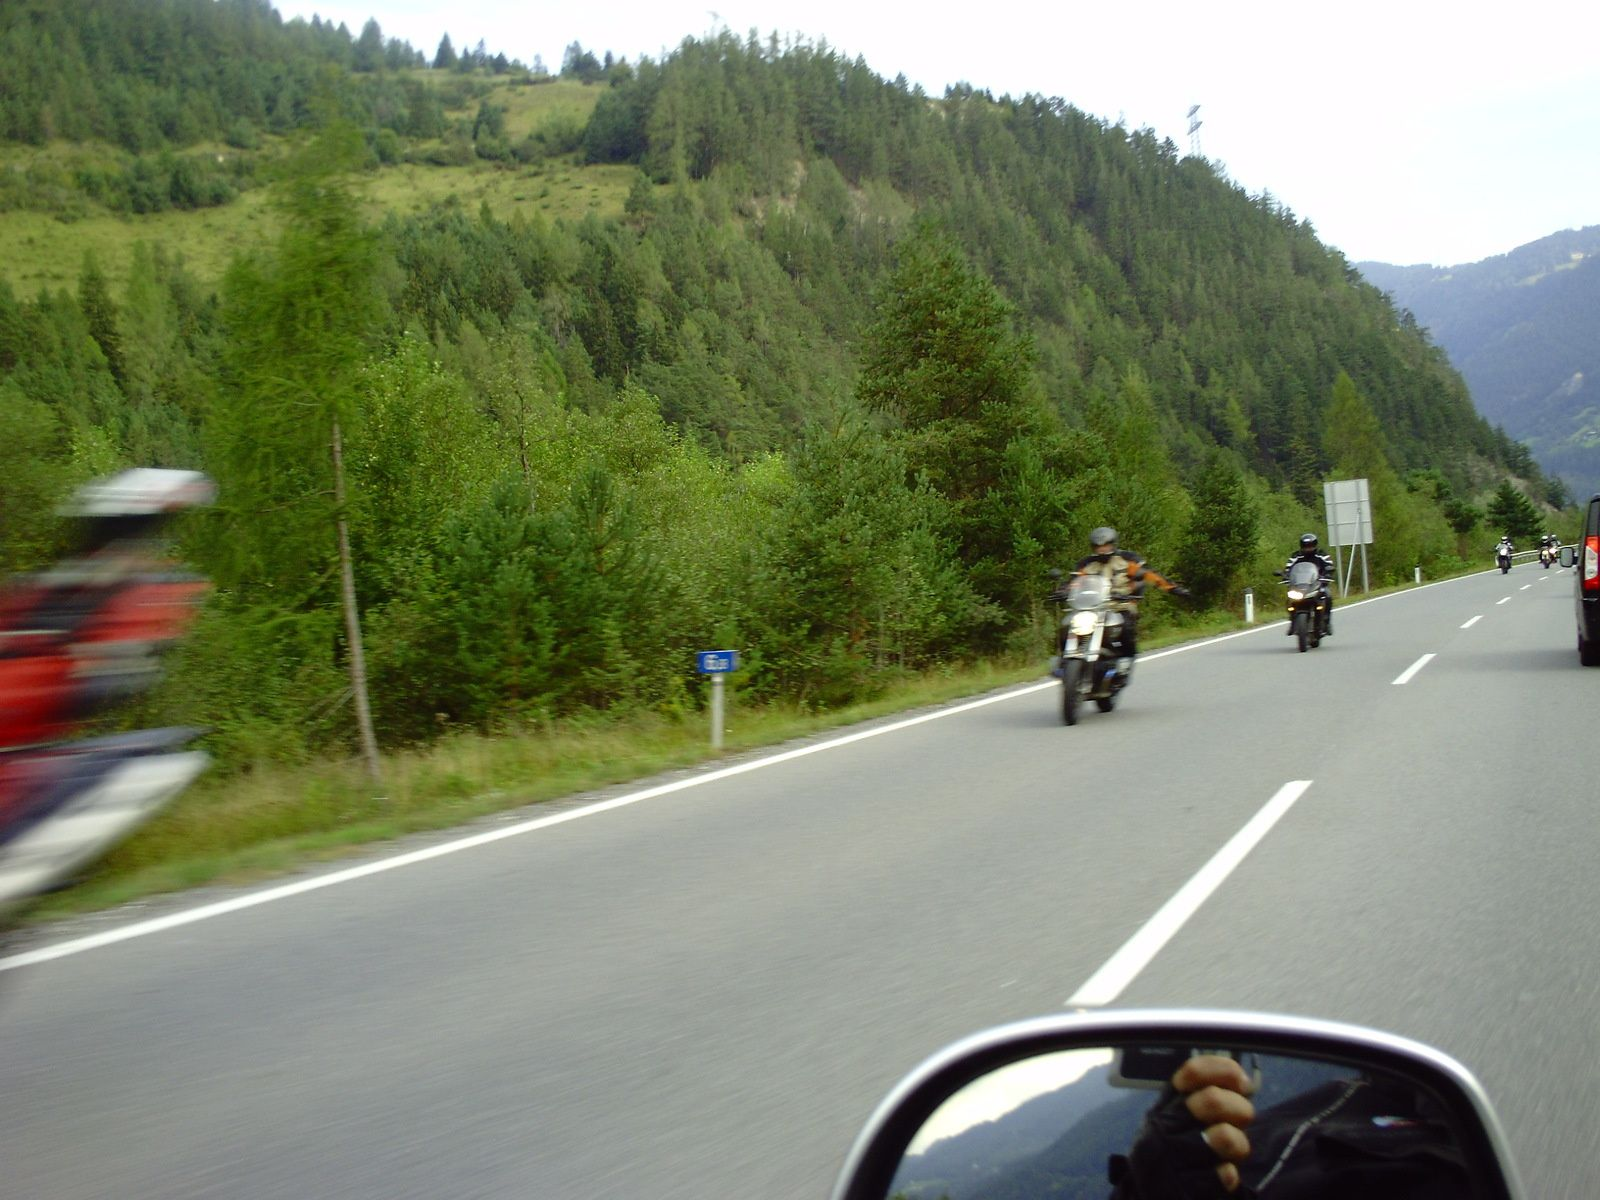 ON VA CROISER UN GRAND NOMBRE DE MOTARDS.............. LES COLS ATTIRENT LES MOTARDS DE LA RÉGION